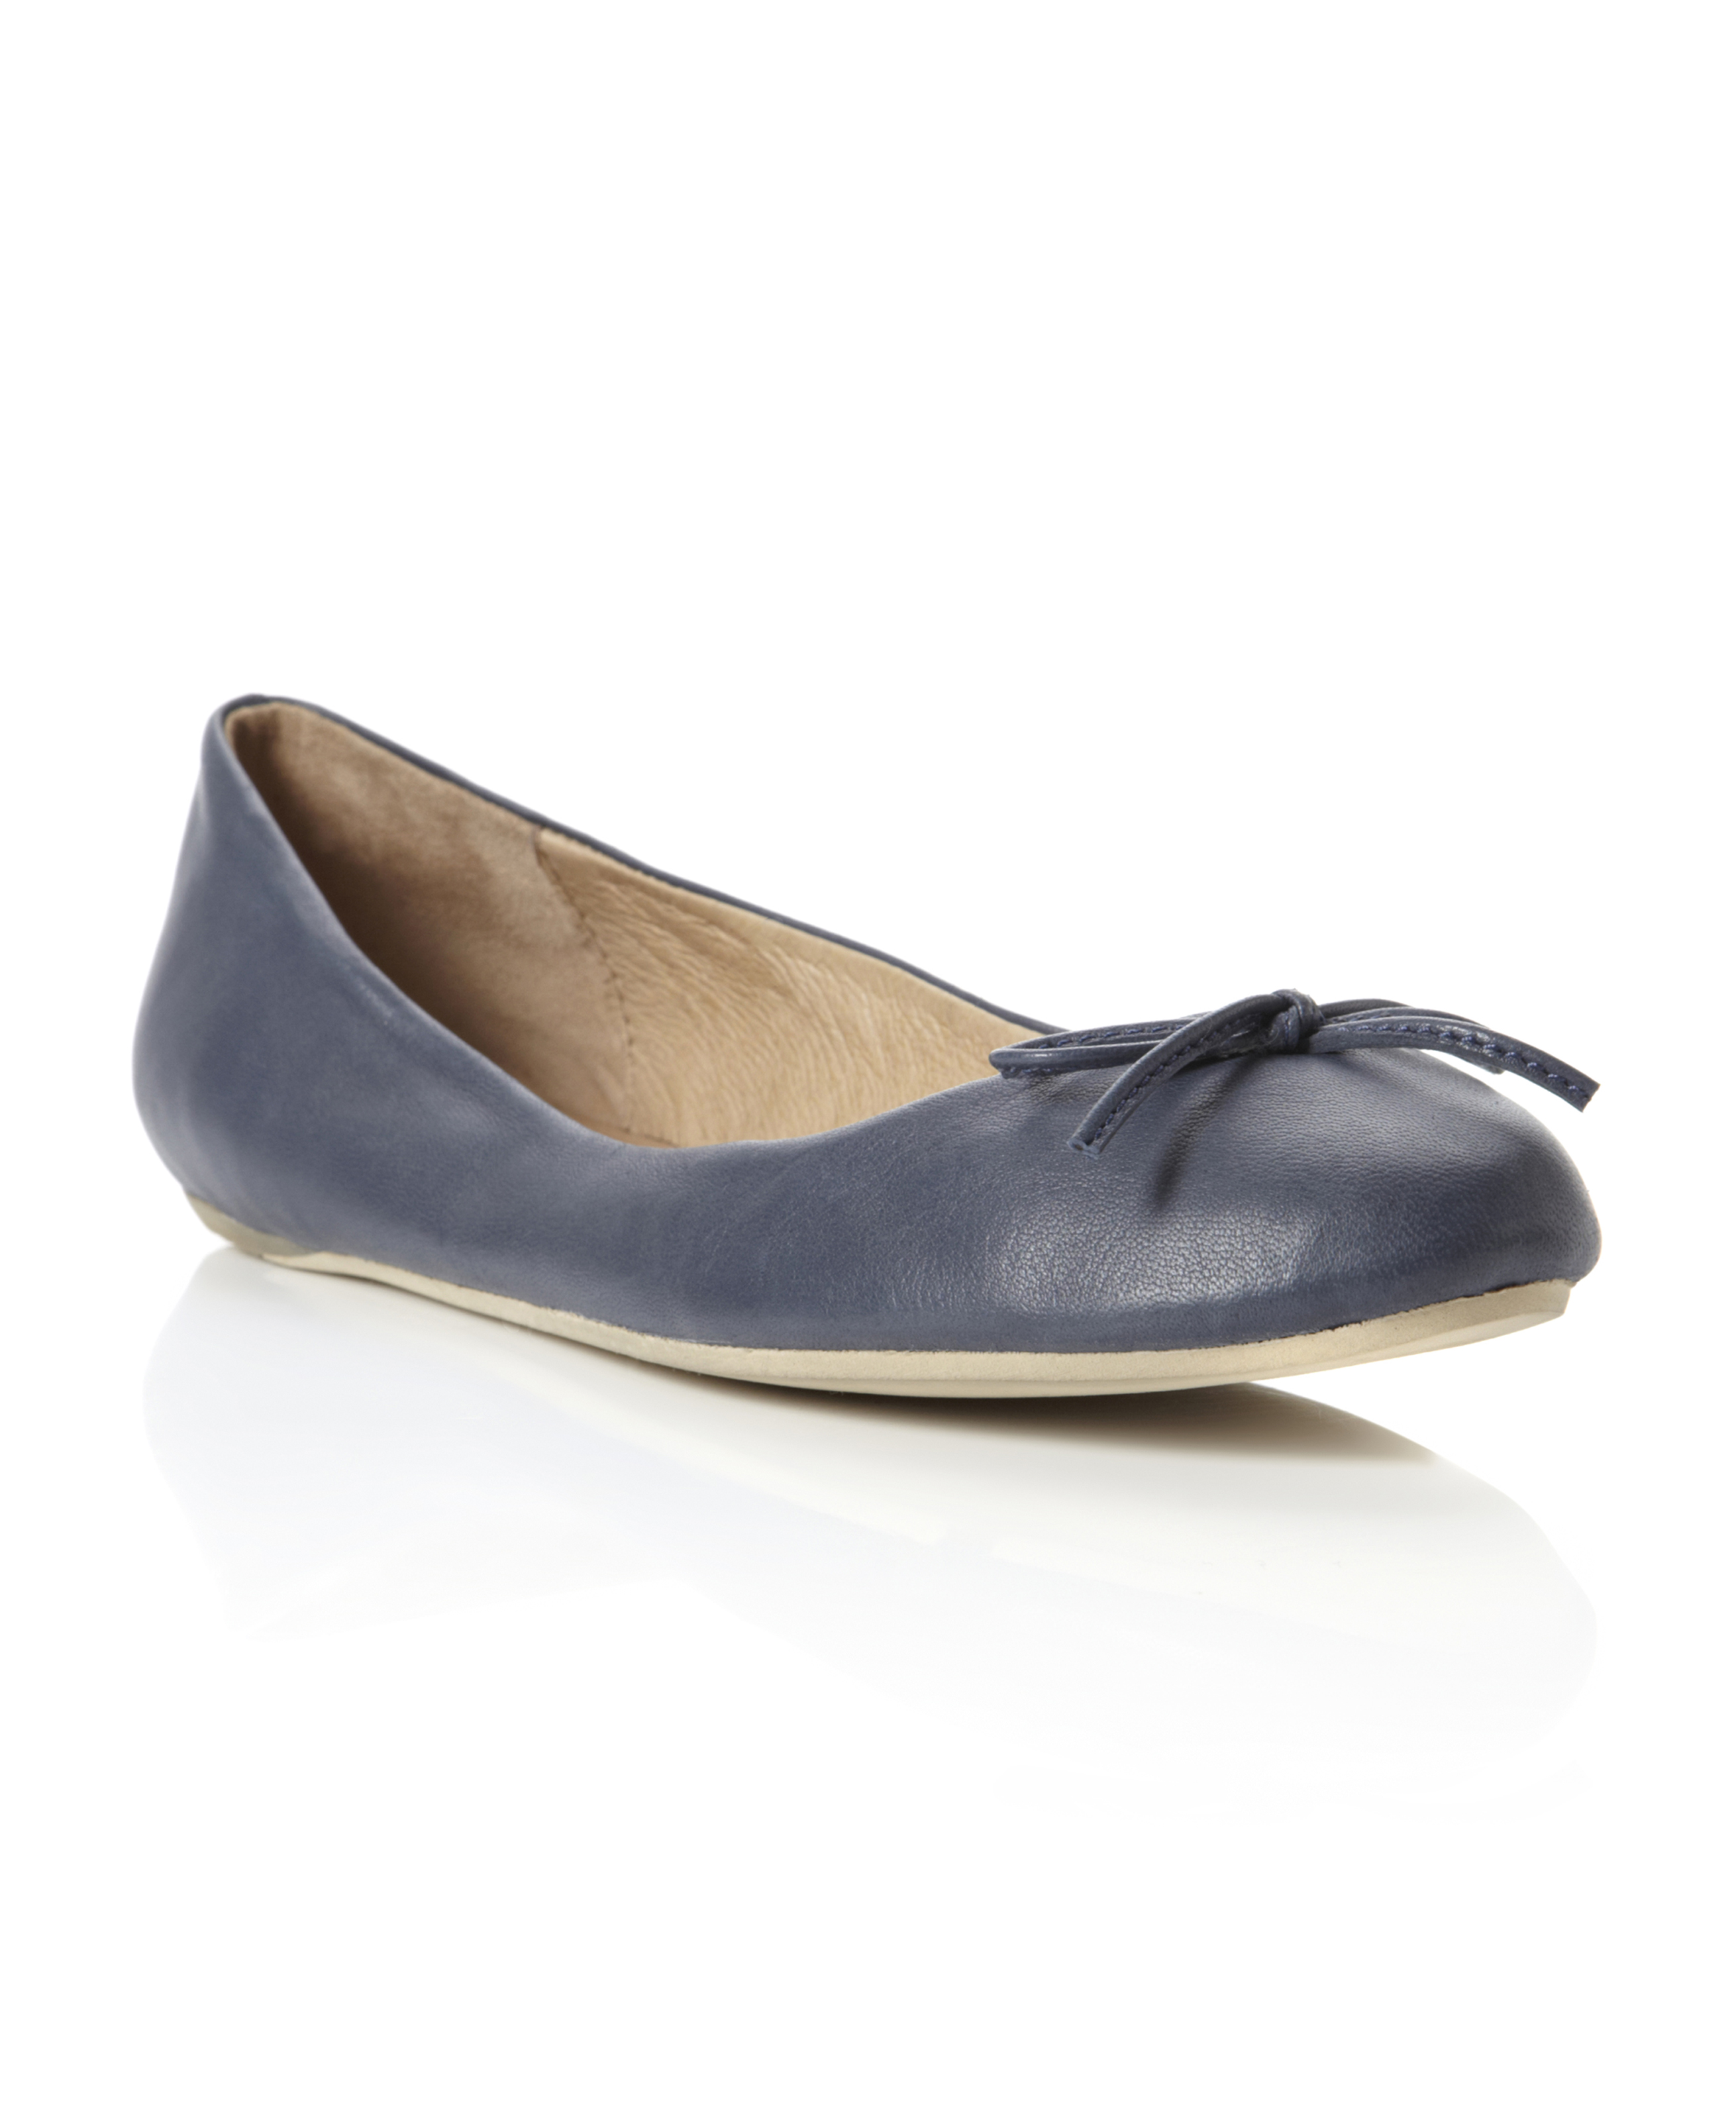 DD4-DUNE-WOMENS-MUSWELL-NAVY-BLUE-LADIES-BOW-FLAT-BALLERINA-PUMPS-SHOES-SIZE-3-8